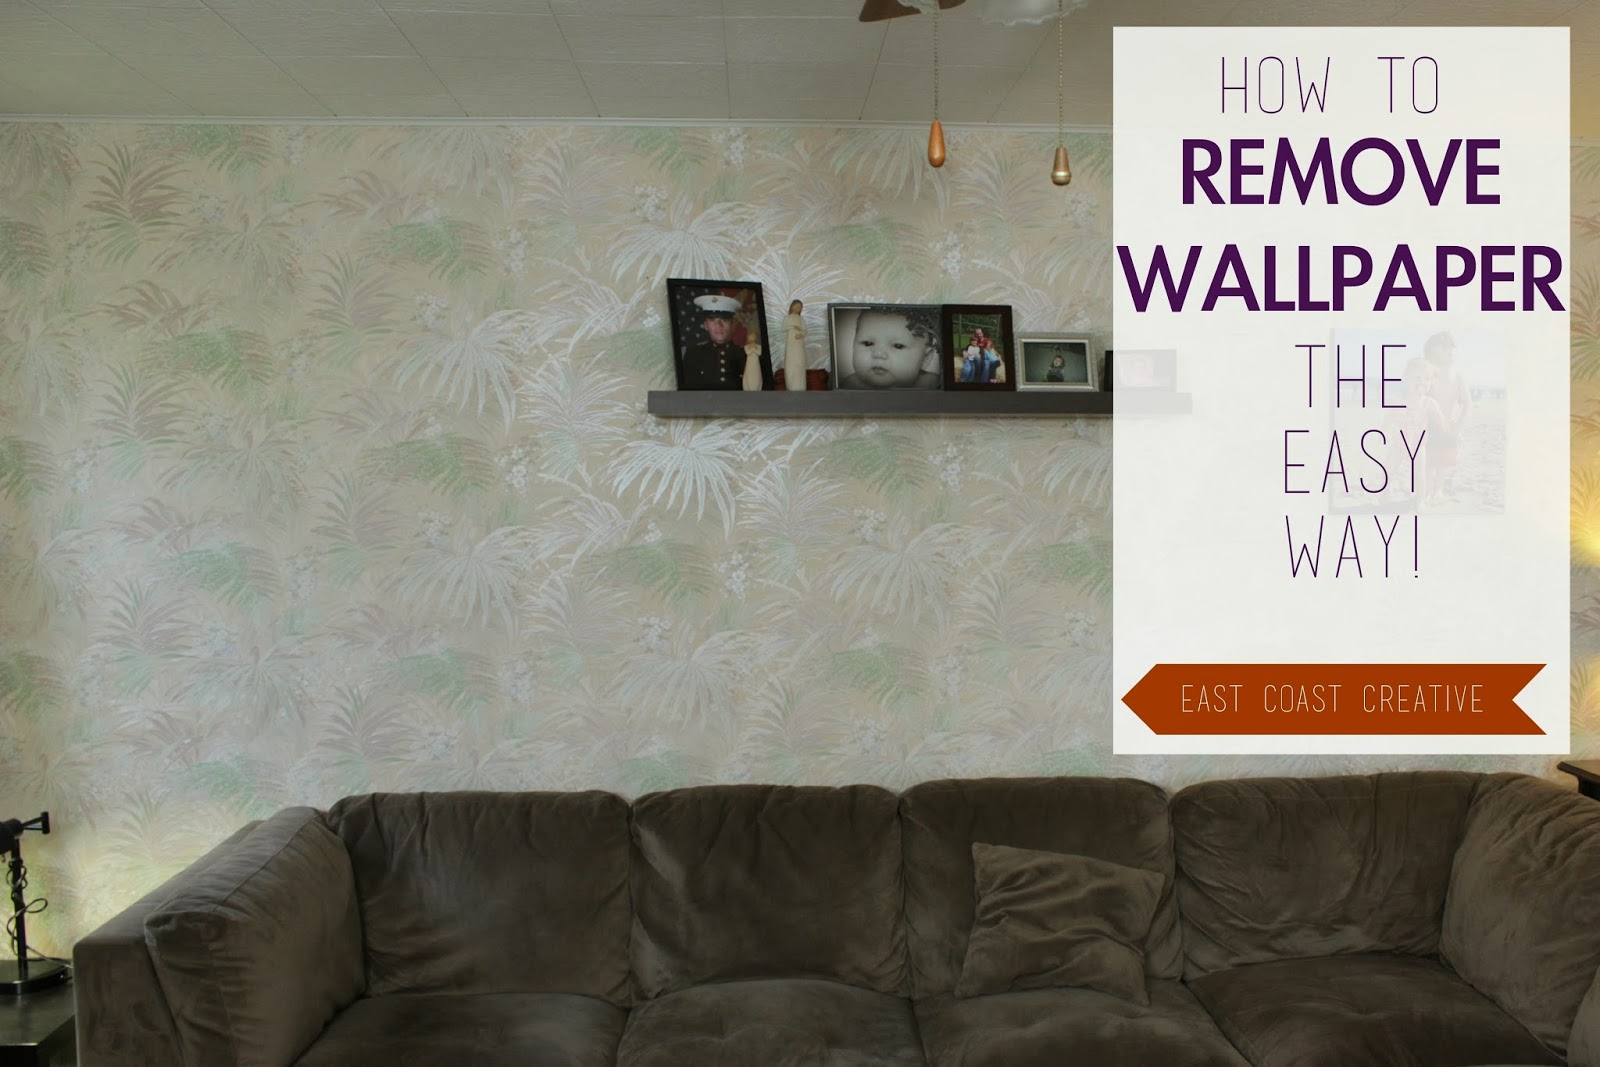 How to Remove Wallpaper the Easy Way!